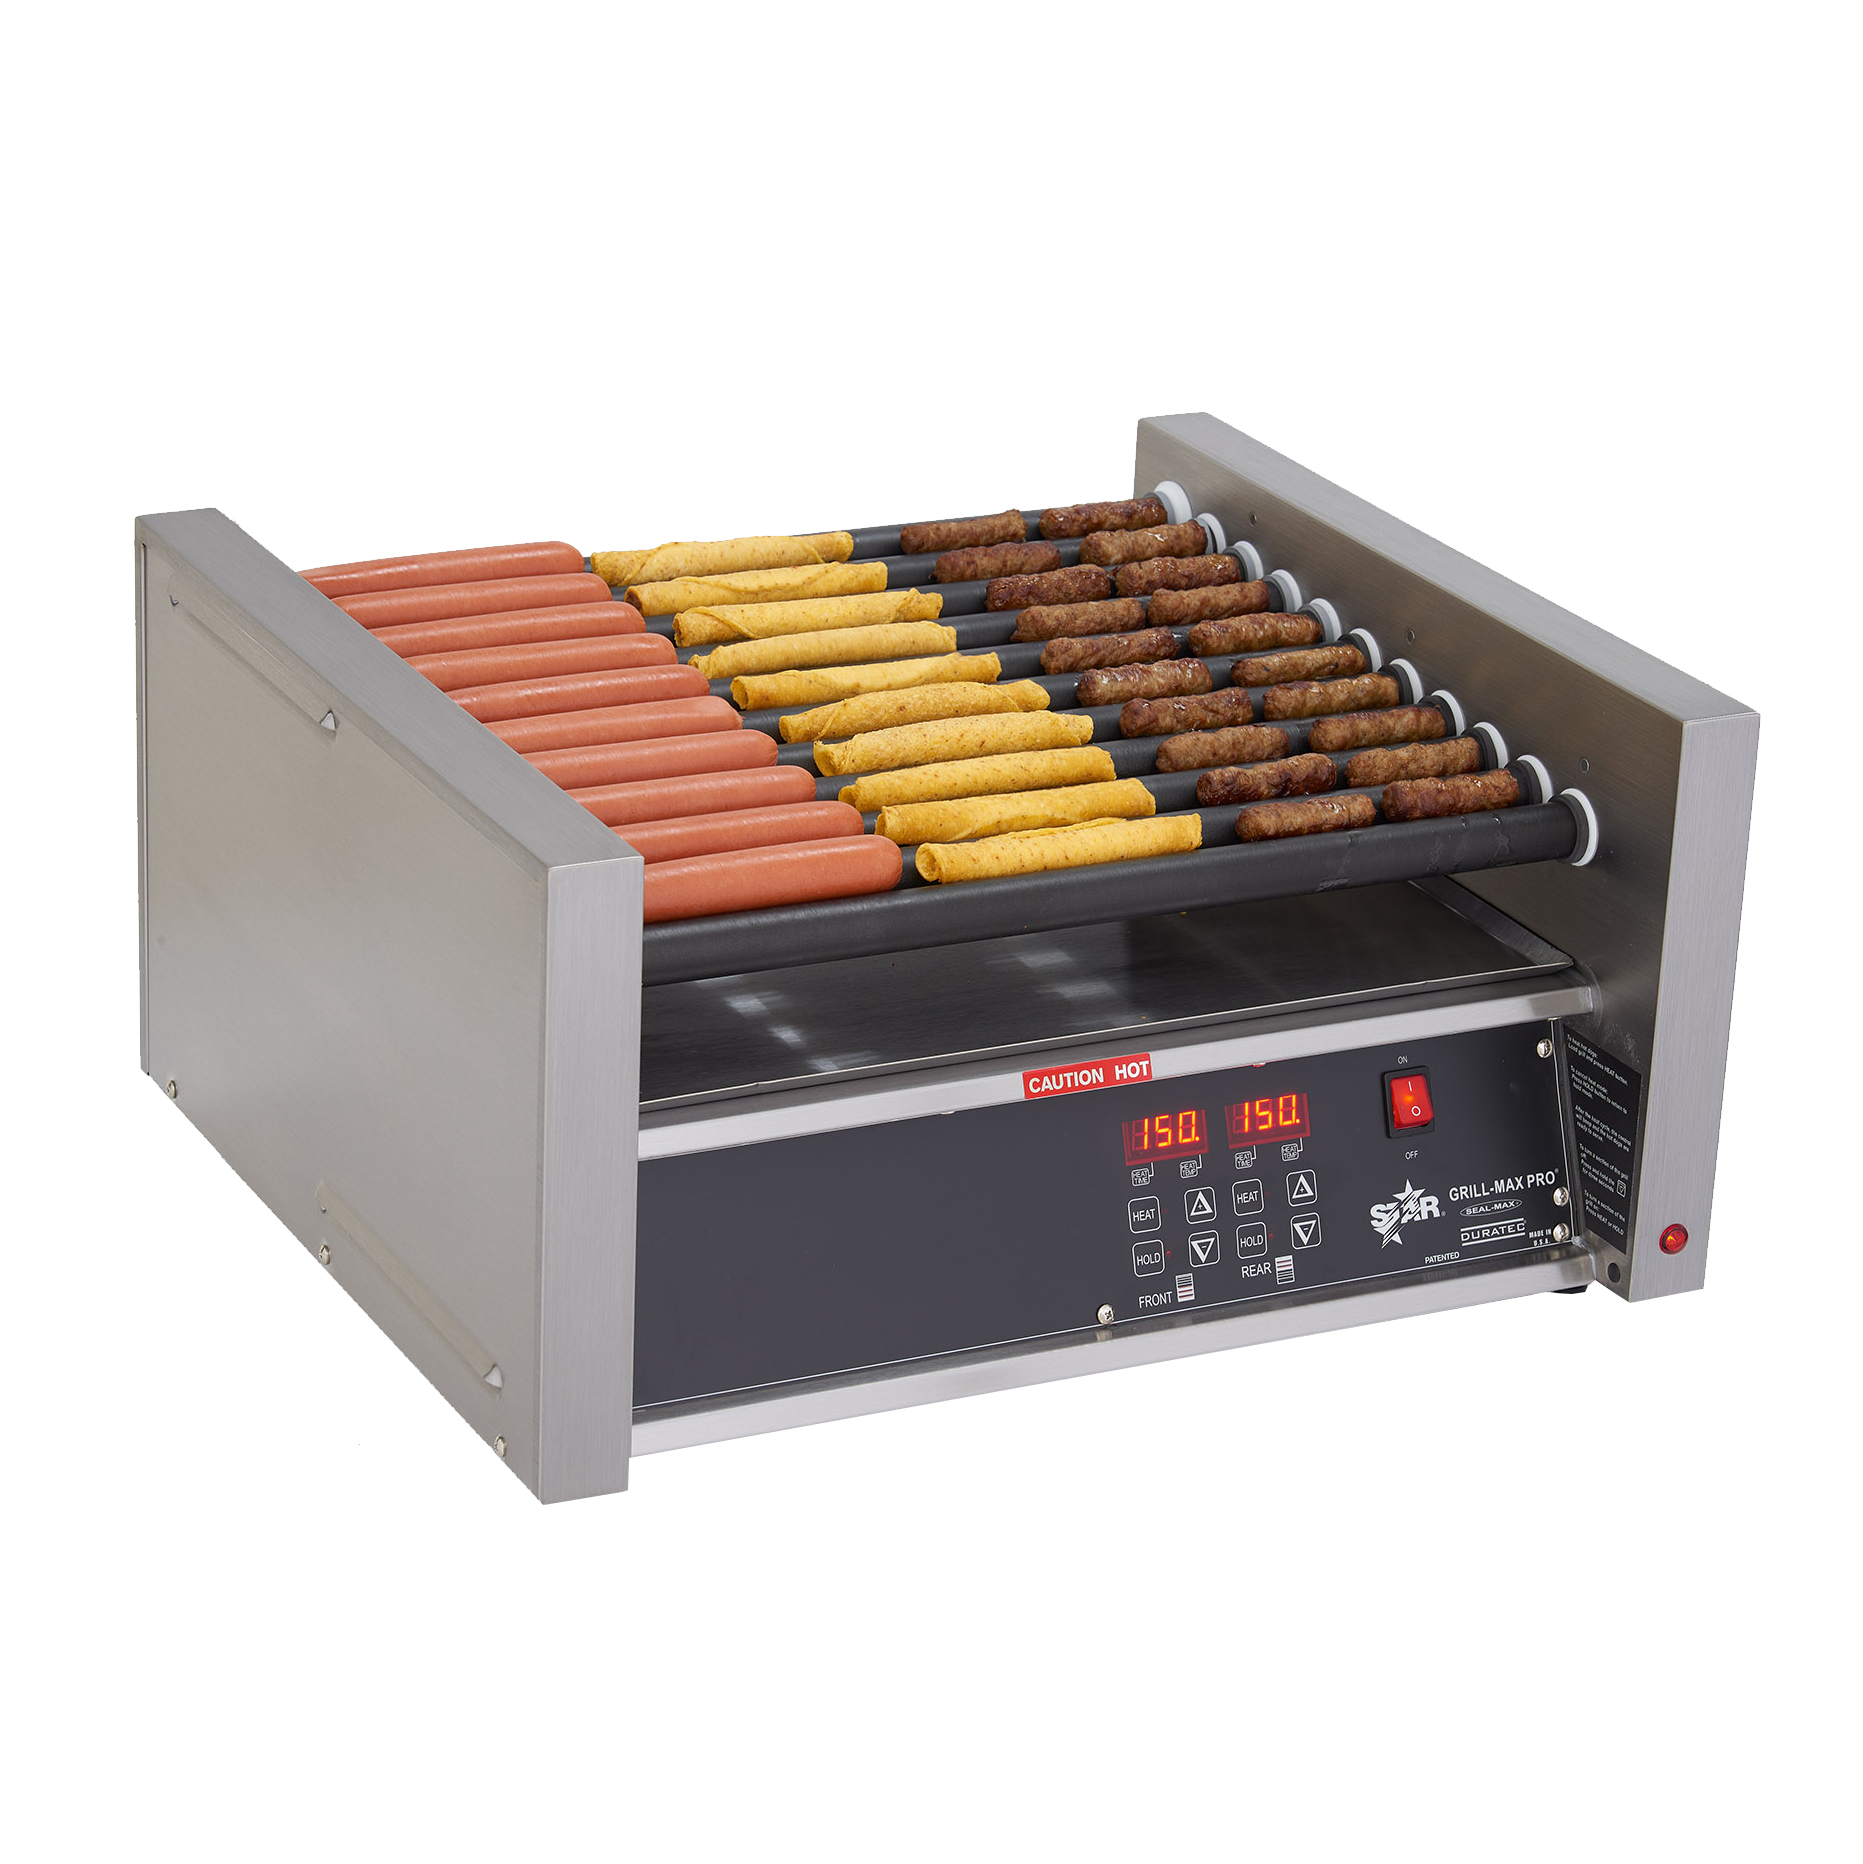 Star 45SCE hot dog grill